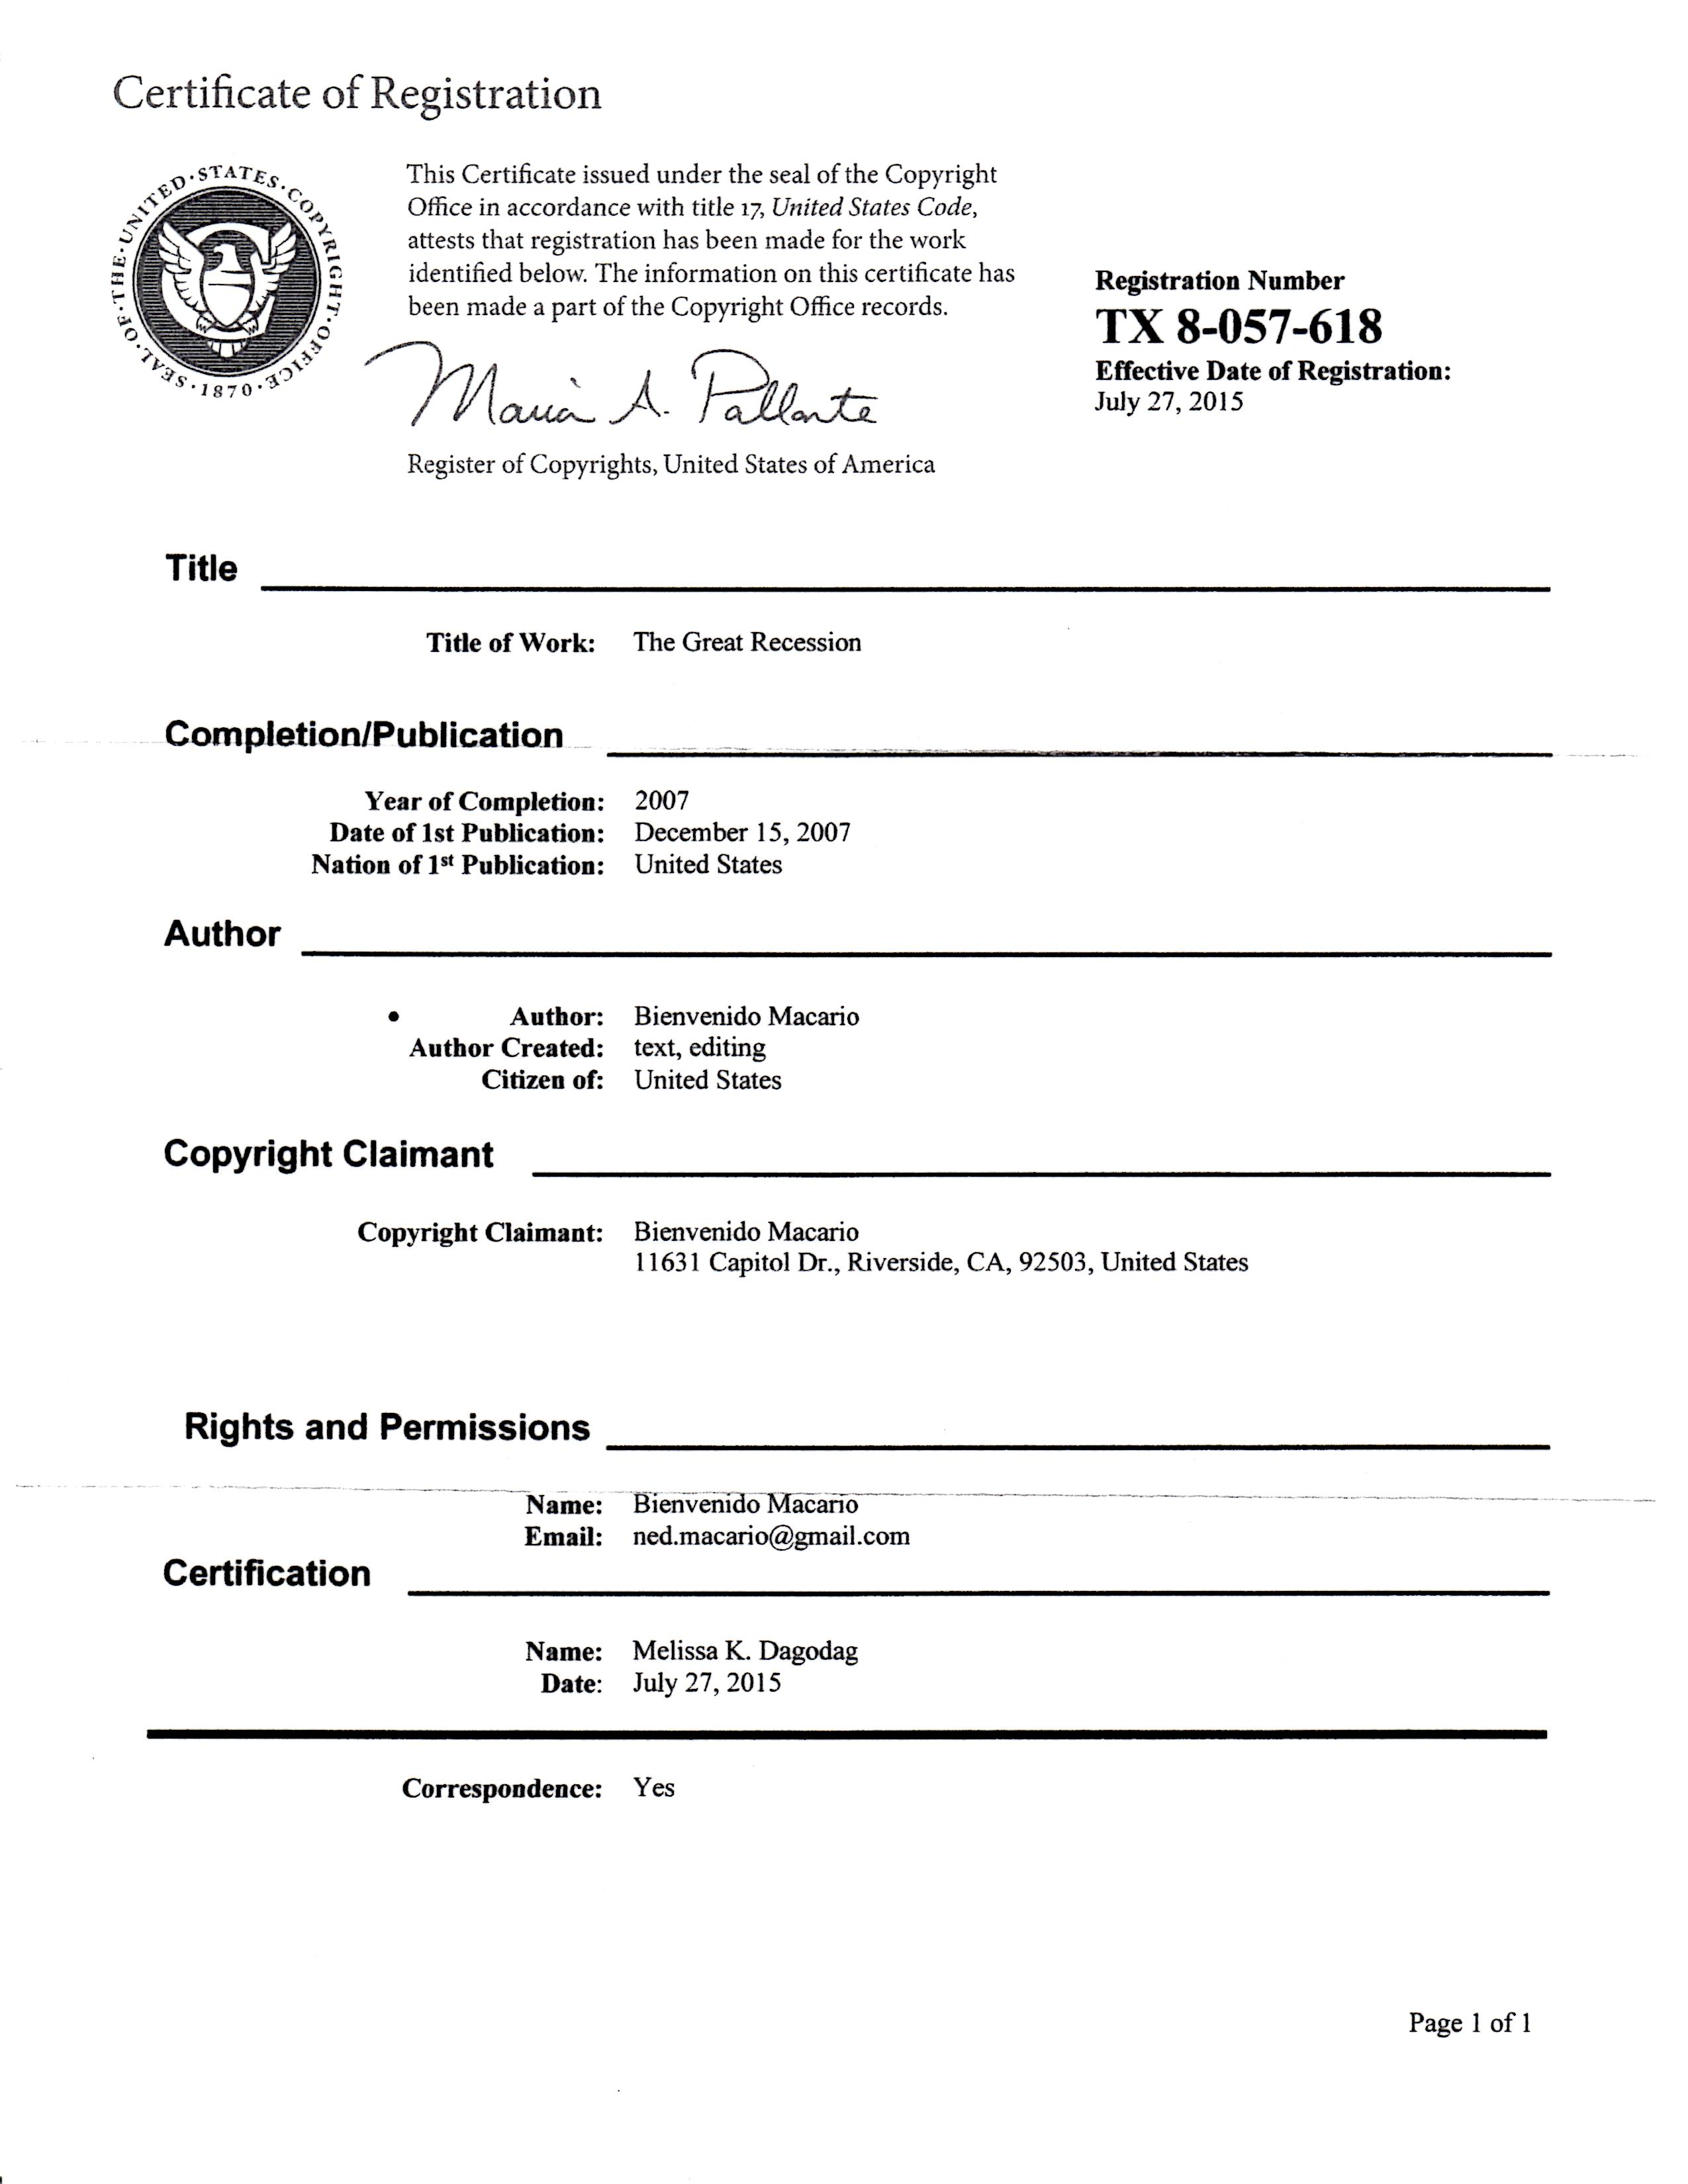 The Great Recession Copyright Certificate 12-15-07